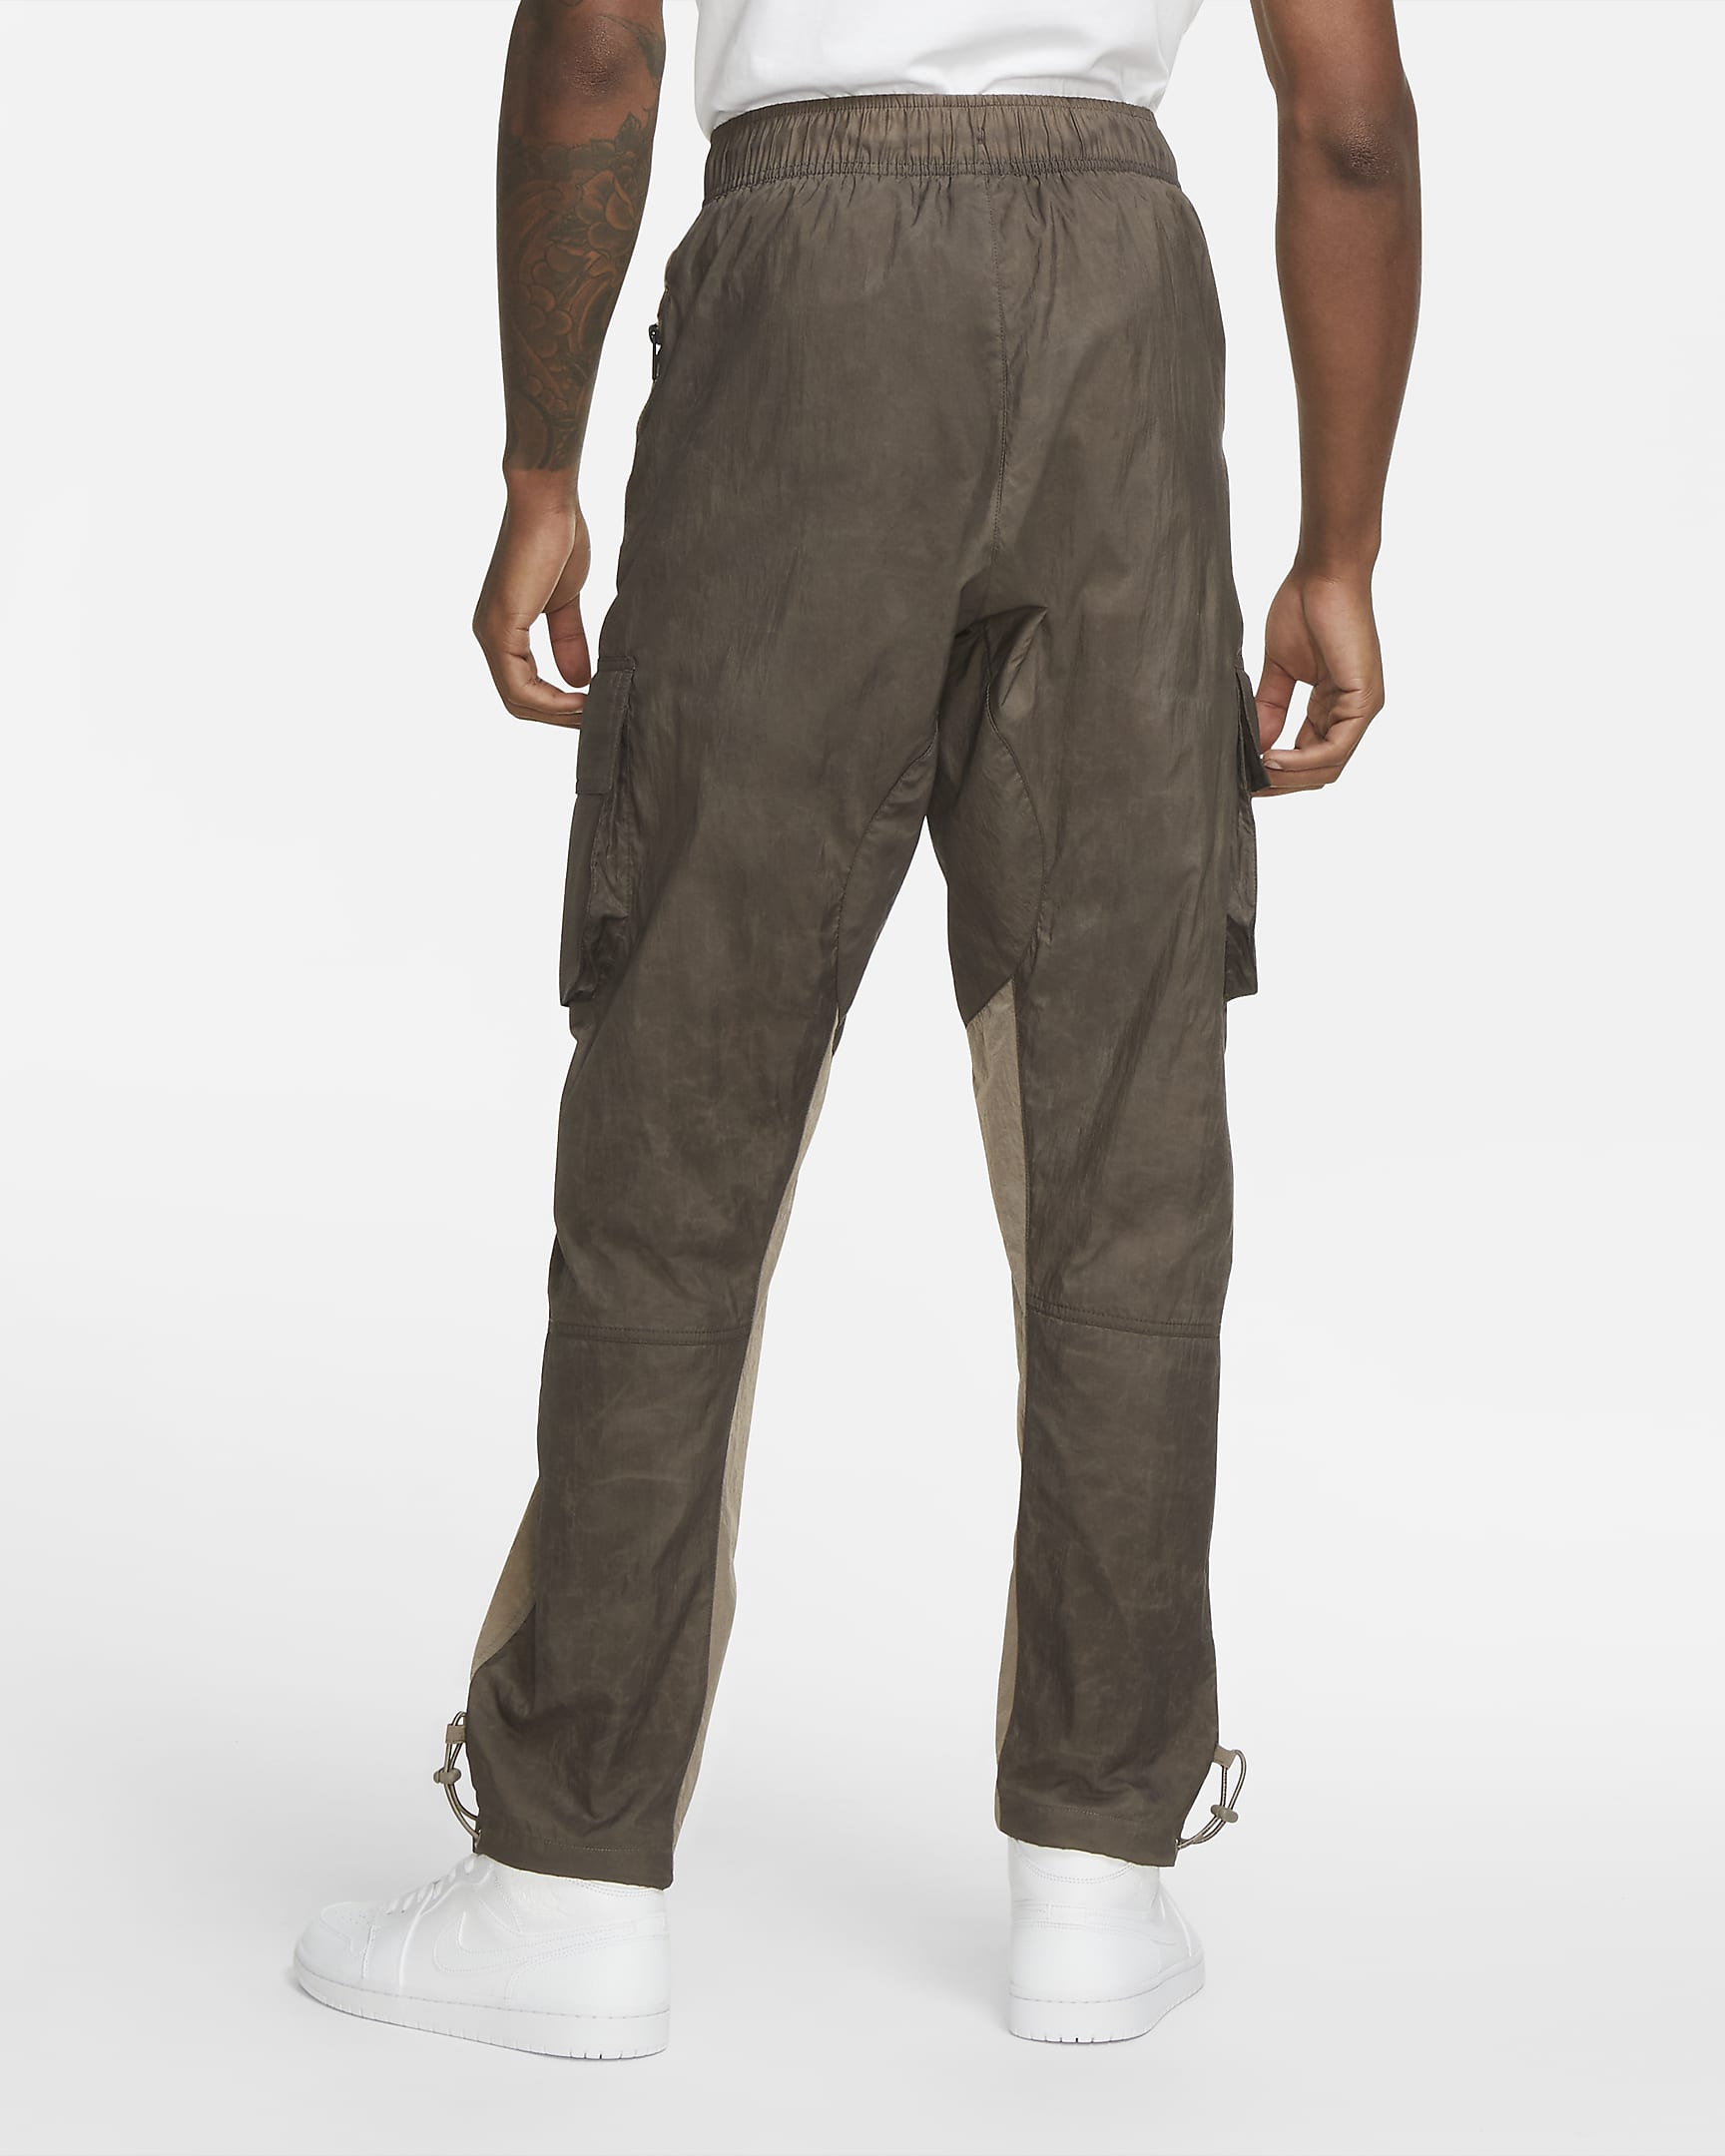 jordan-23-engineered-mens-cargo-pants-HtXMBm-5